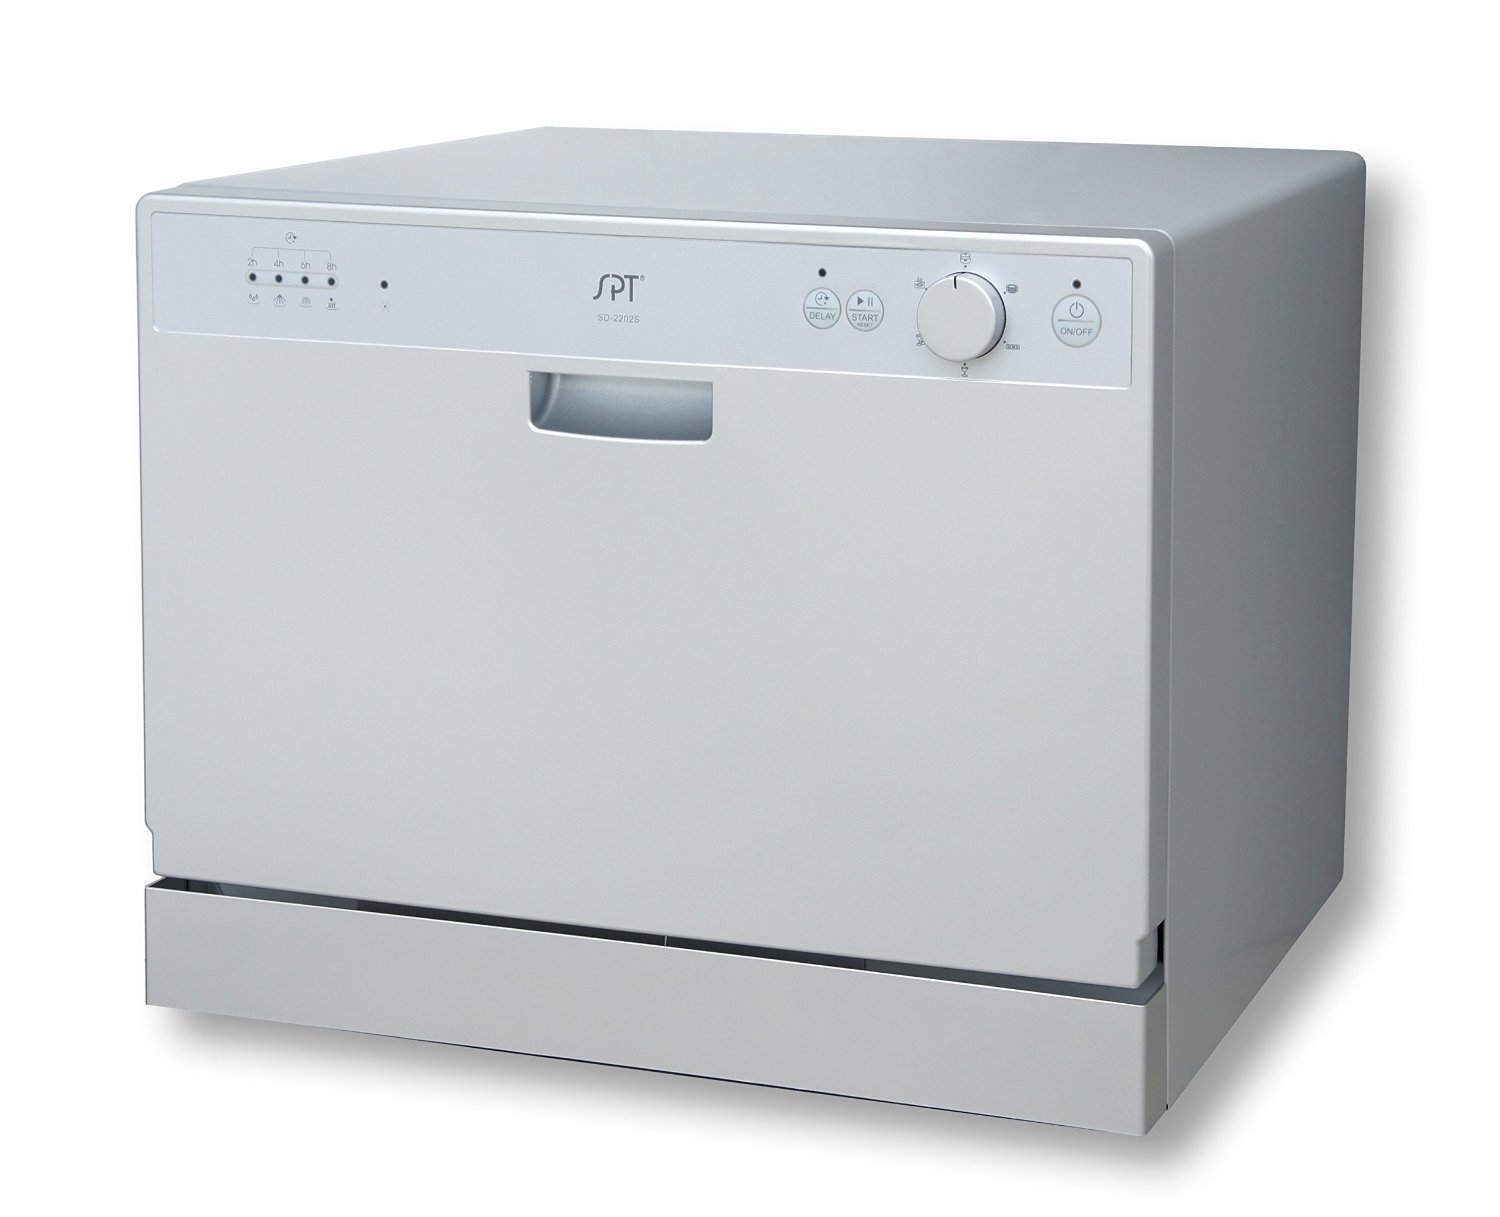 SPT SD-2202S Countertop Dishwasher - Weight and Dimensions